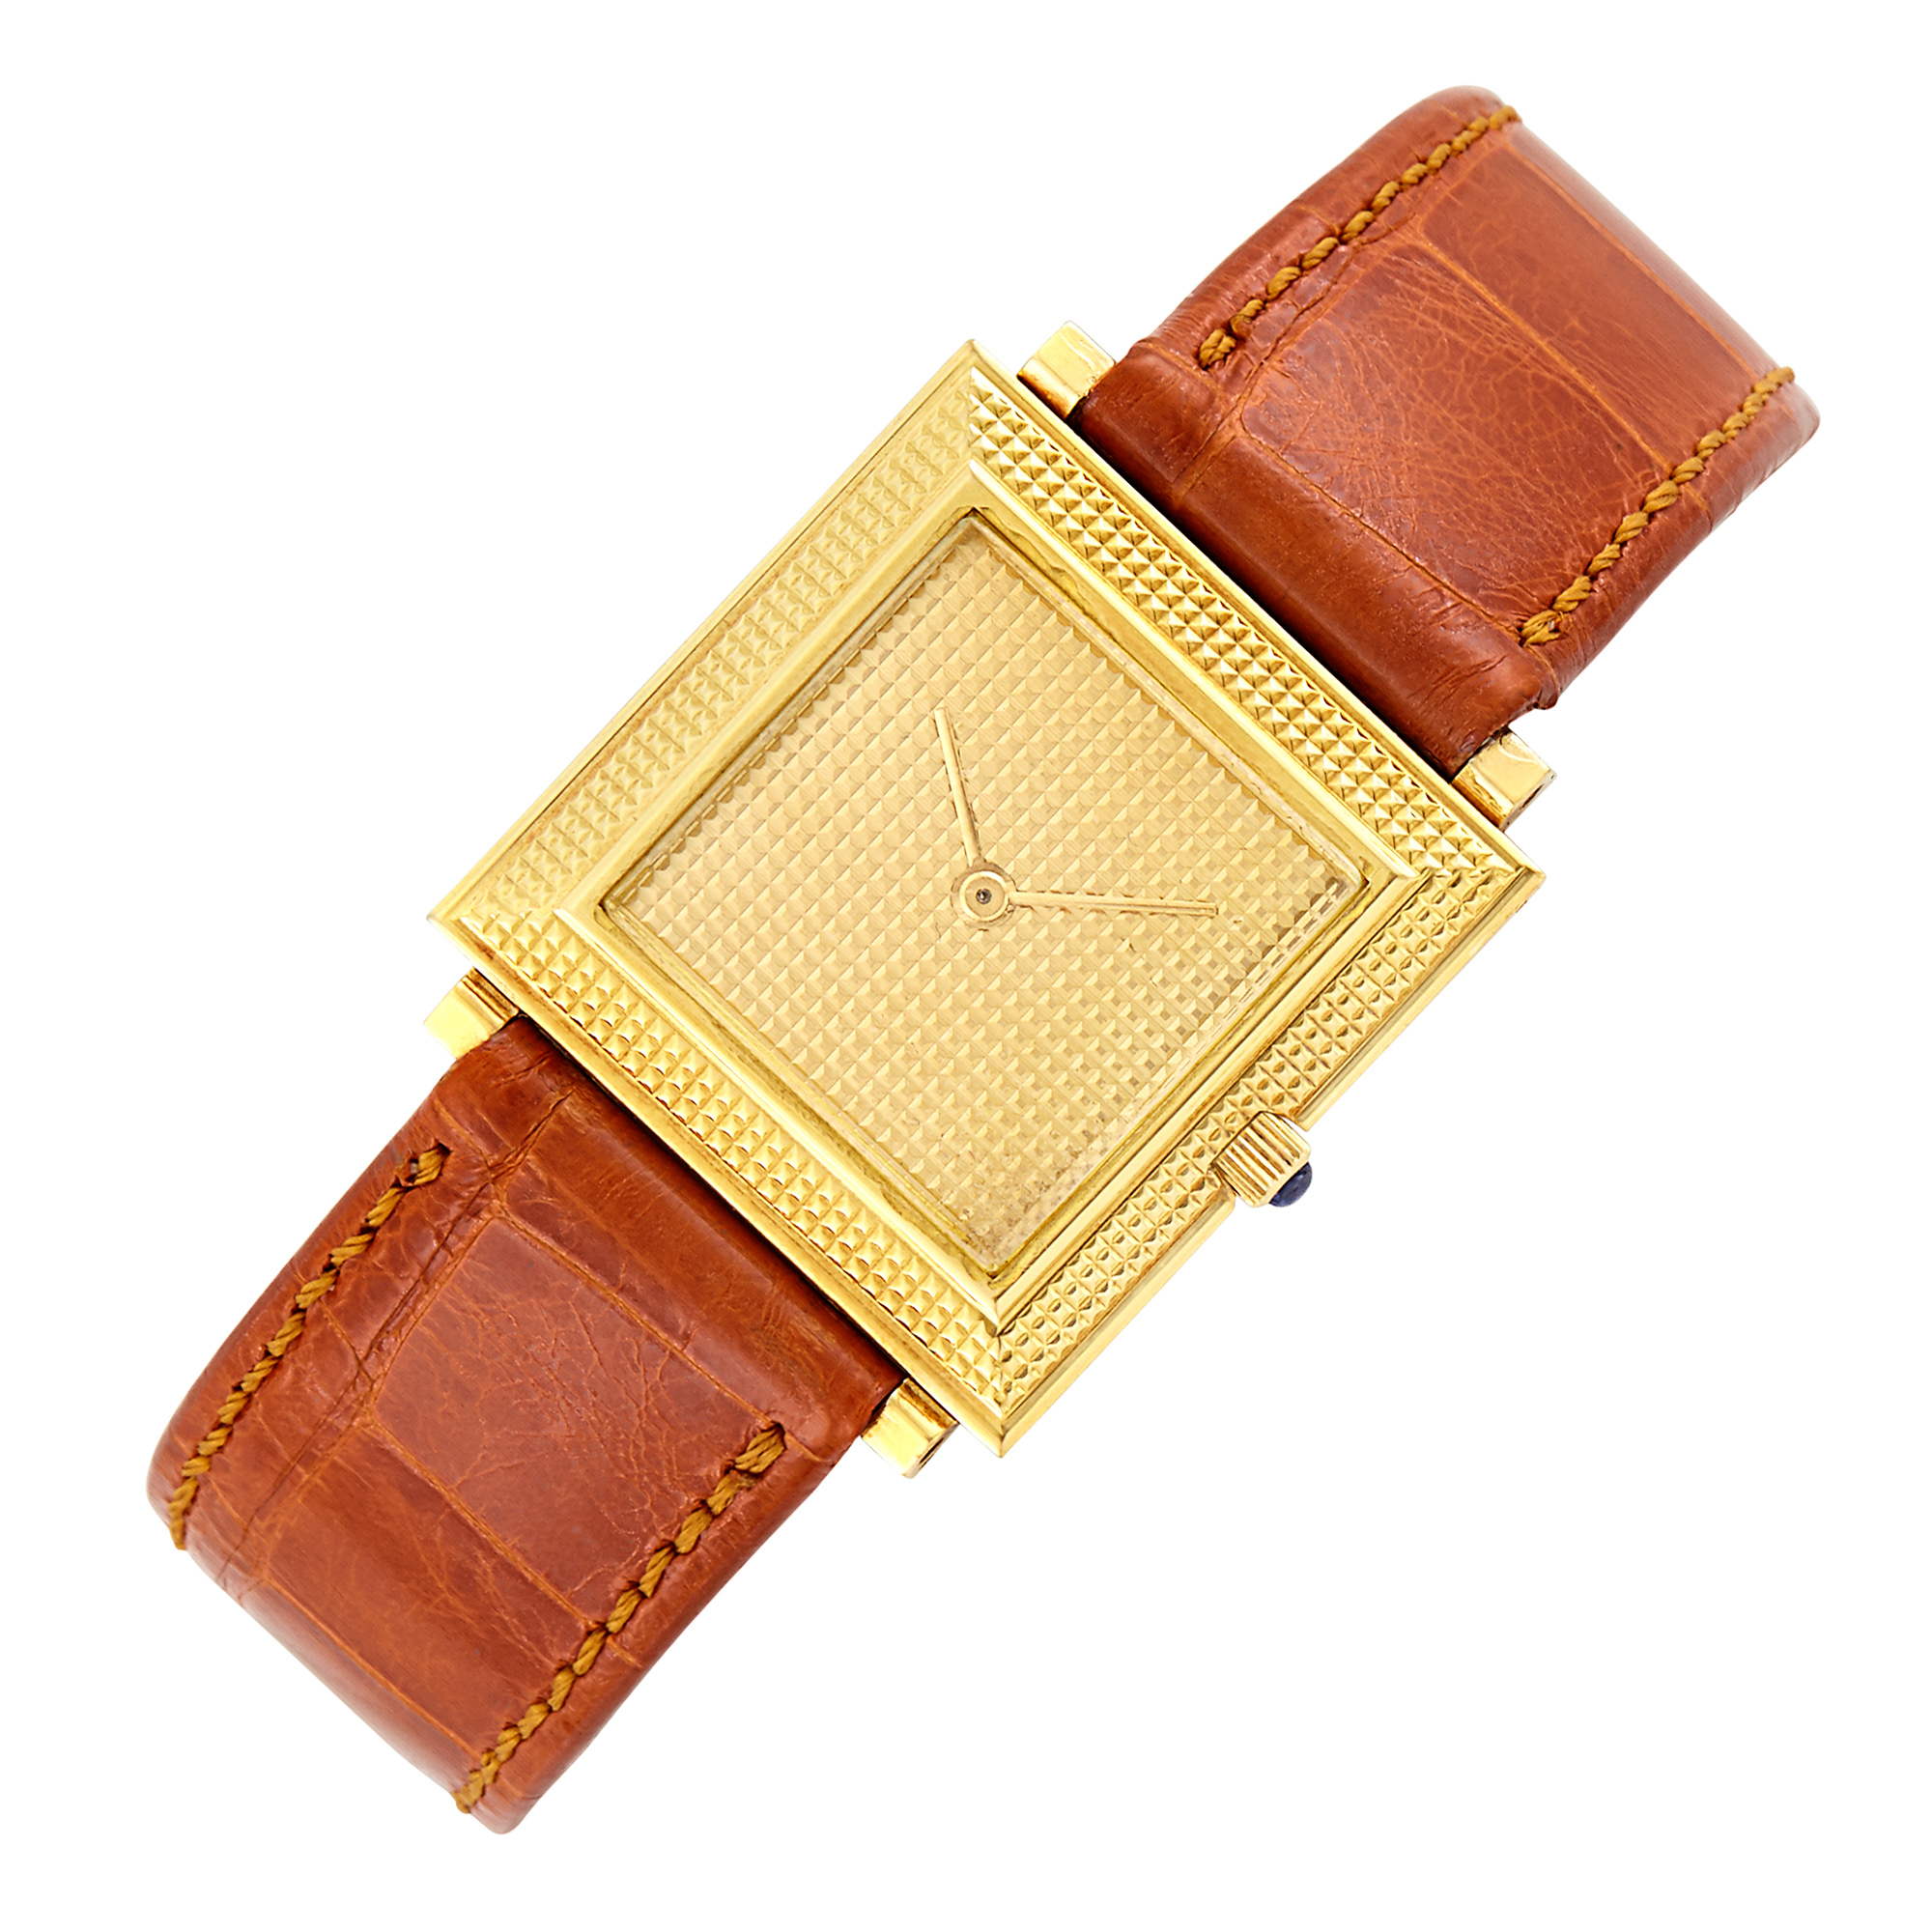 Lot image - Gold Wristwatch, Boucheron, France